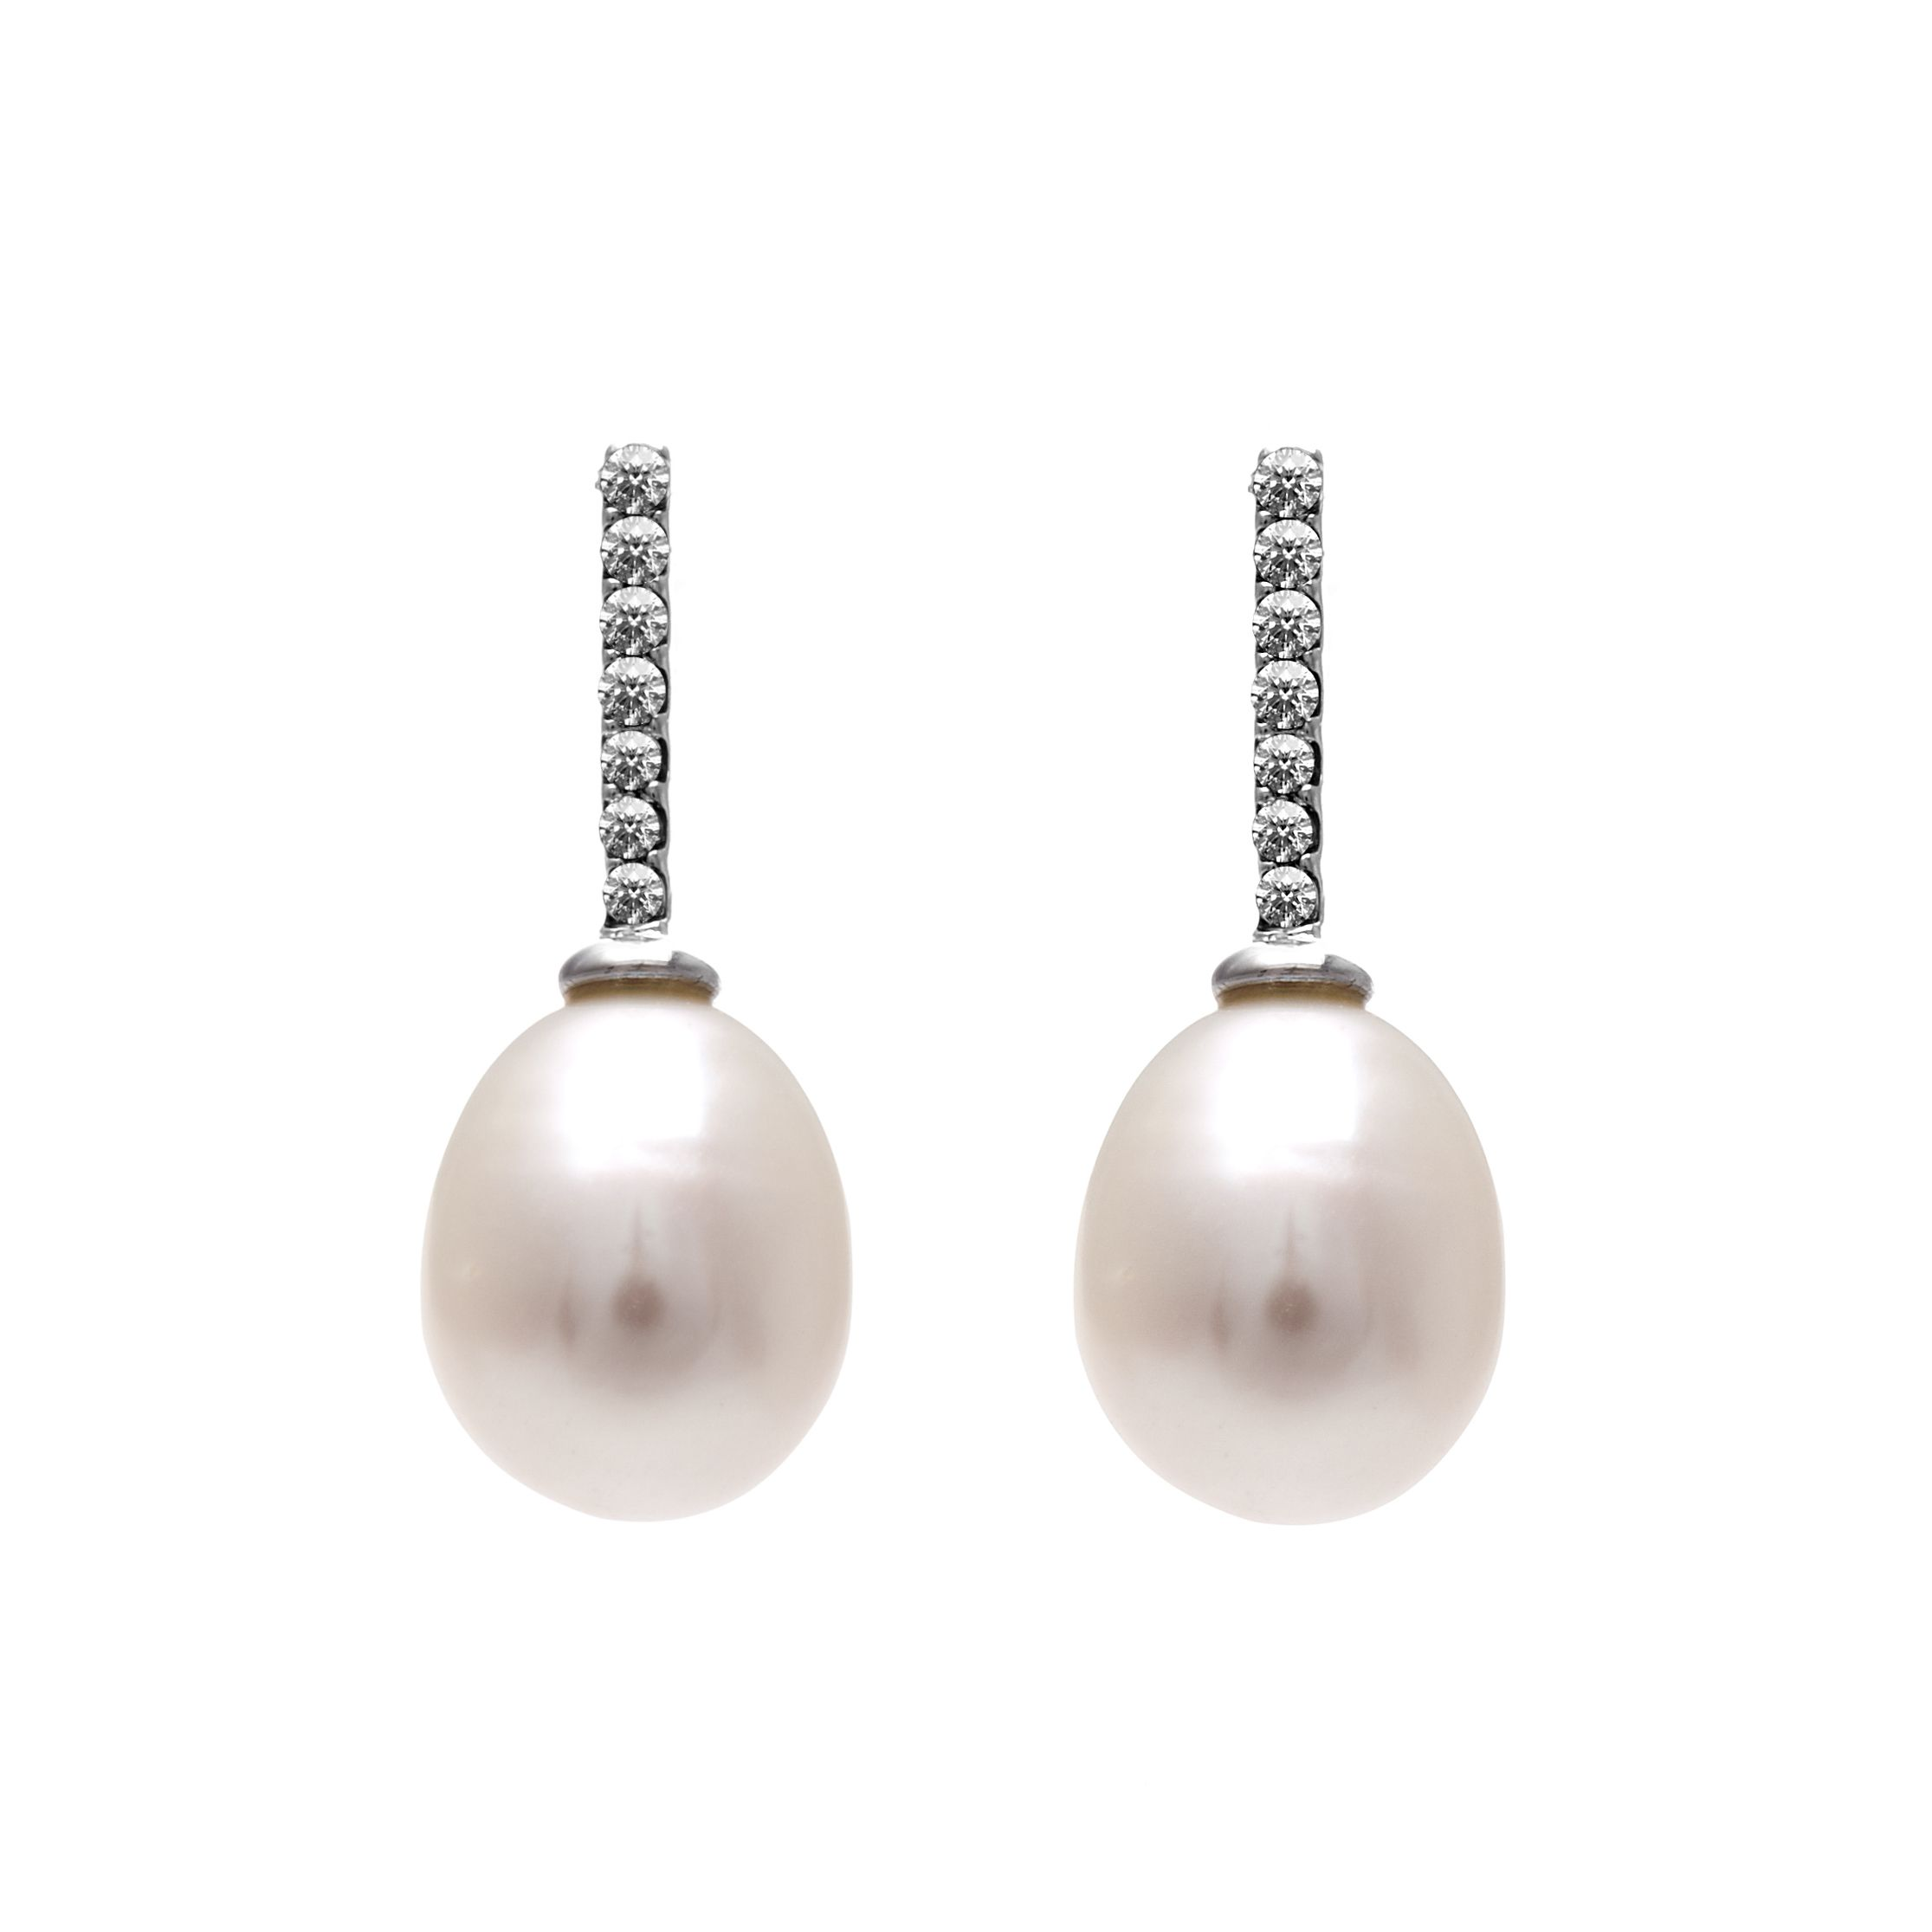 kyoto pearl drop earring with swarovski crystals